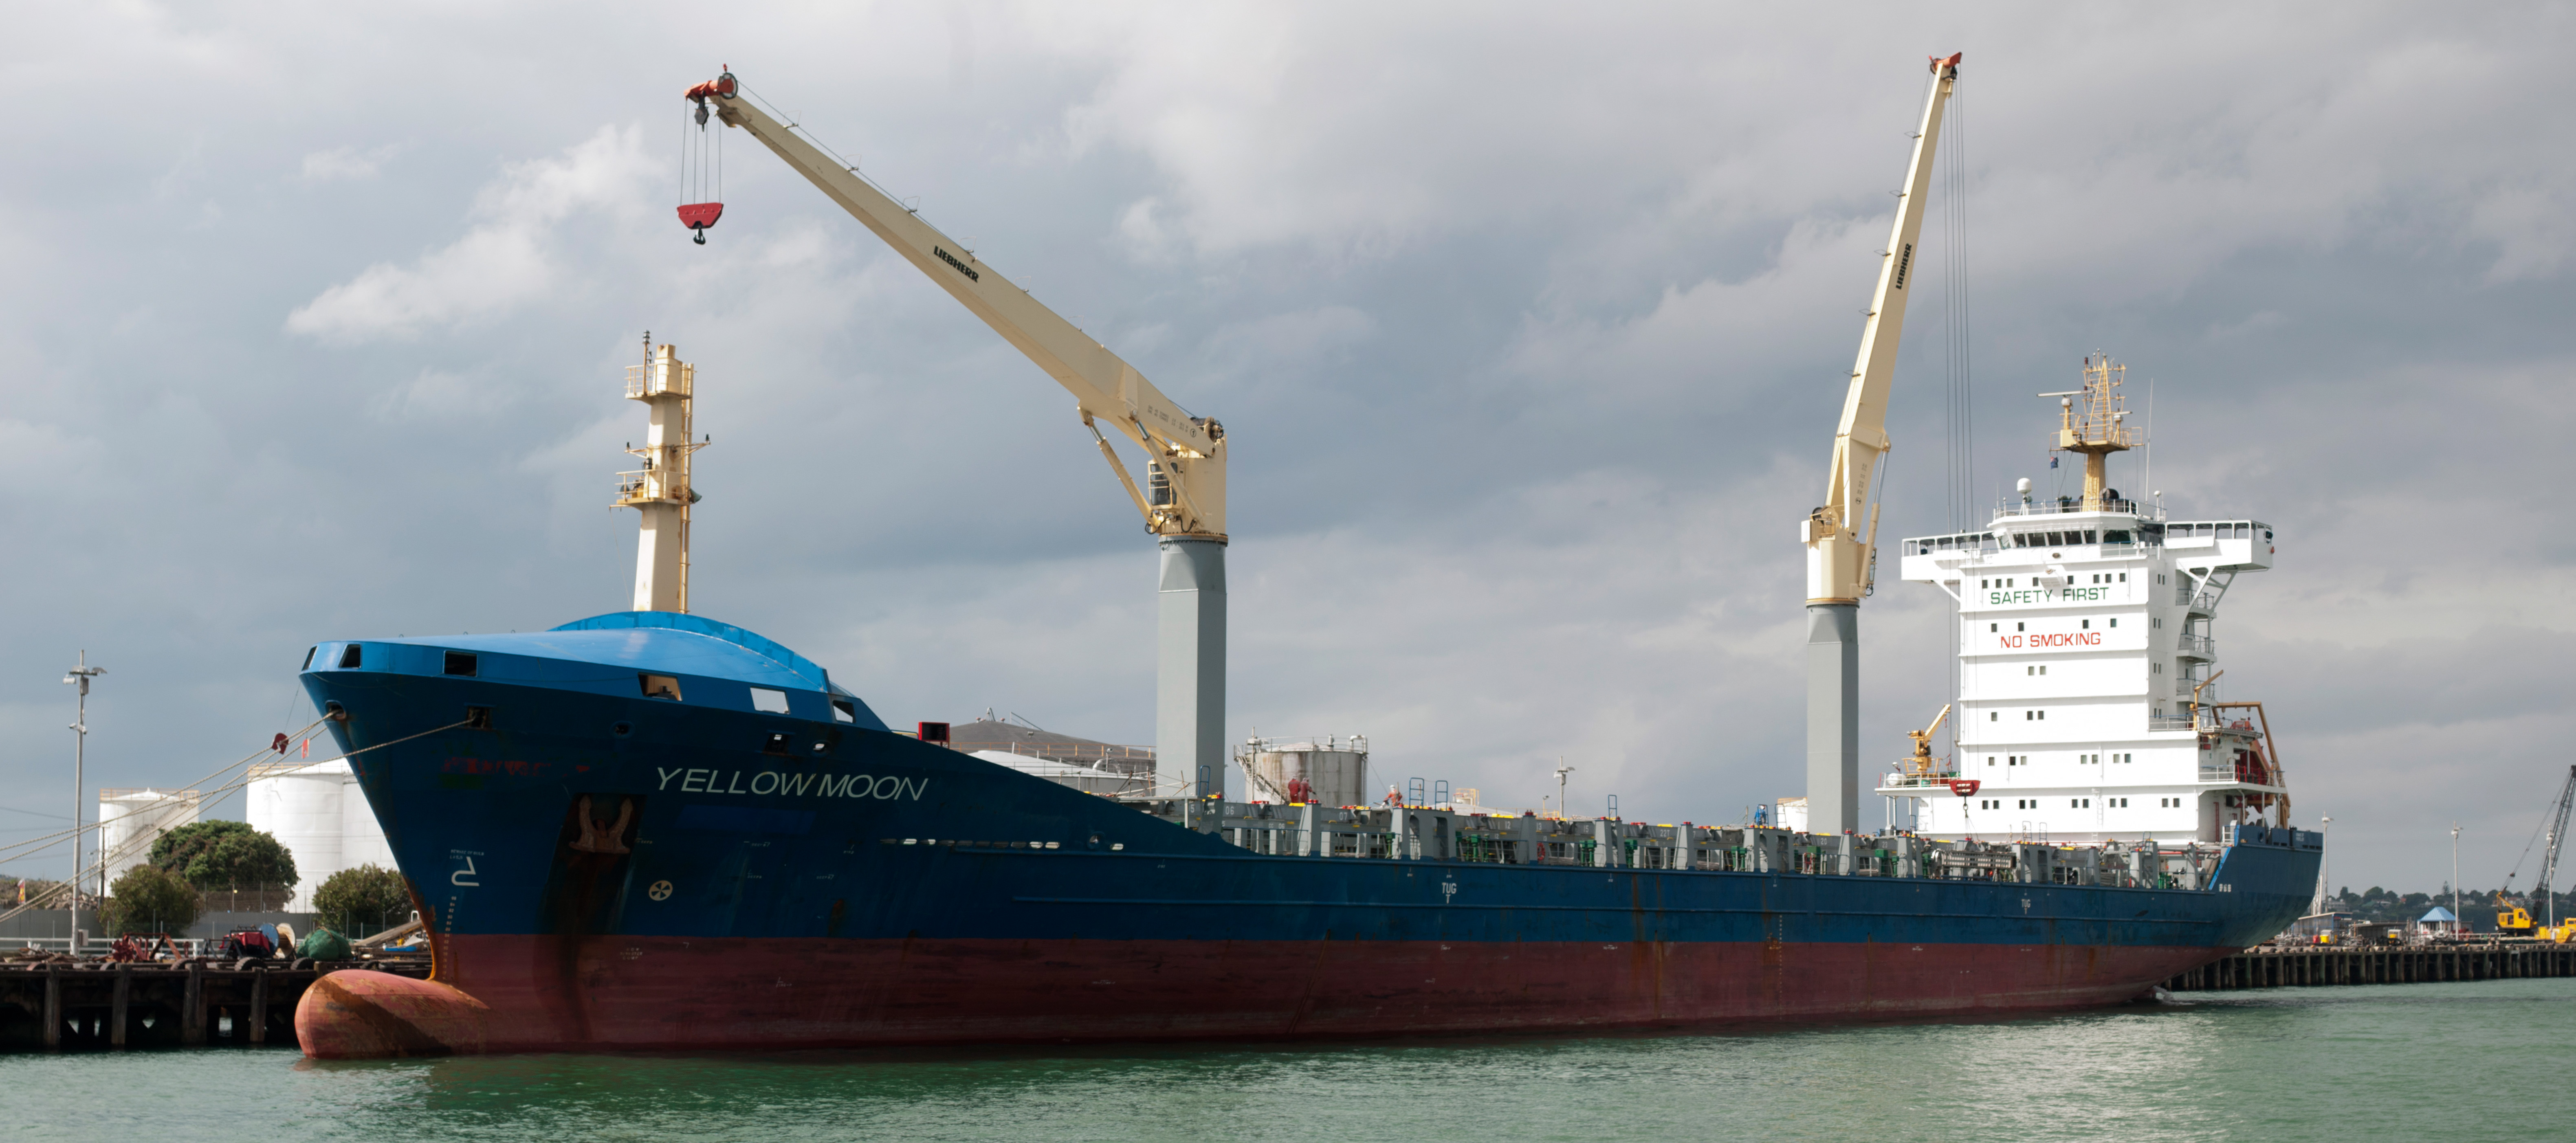 Yellow moon container ship docked in auckland harbour photo